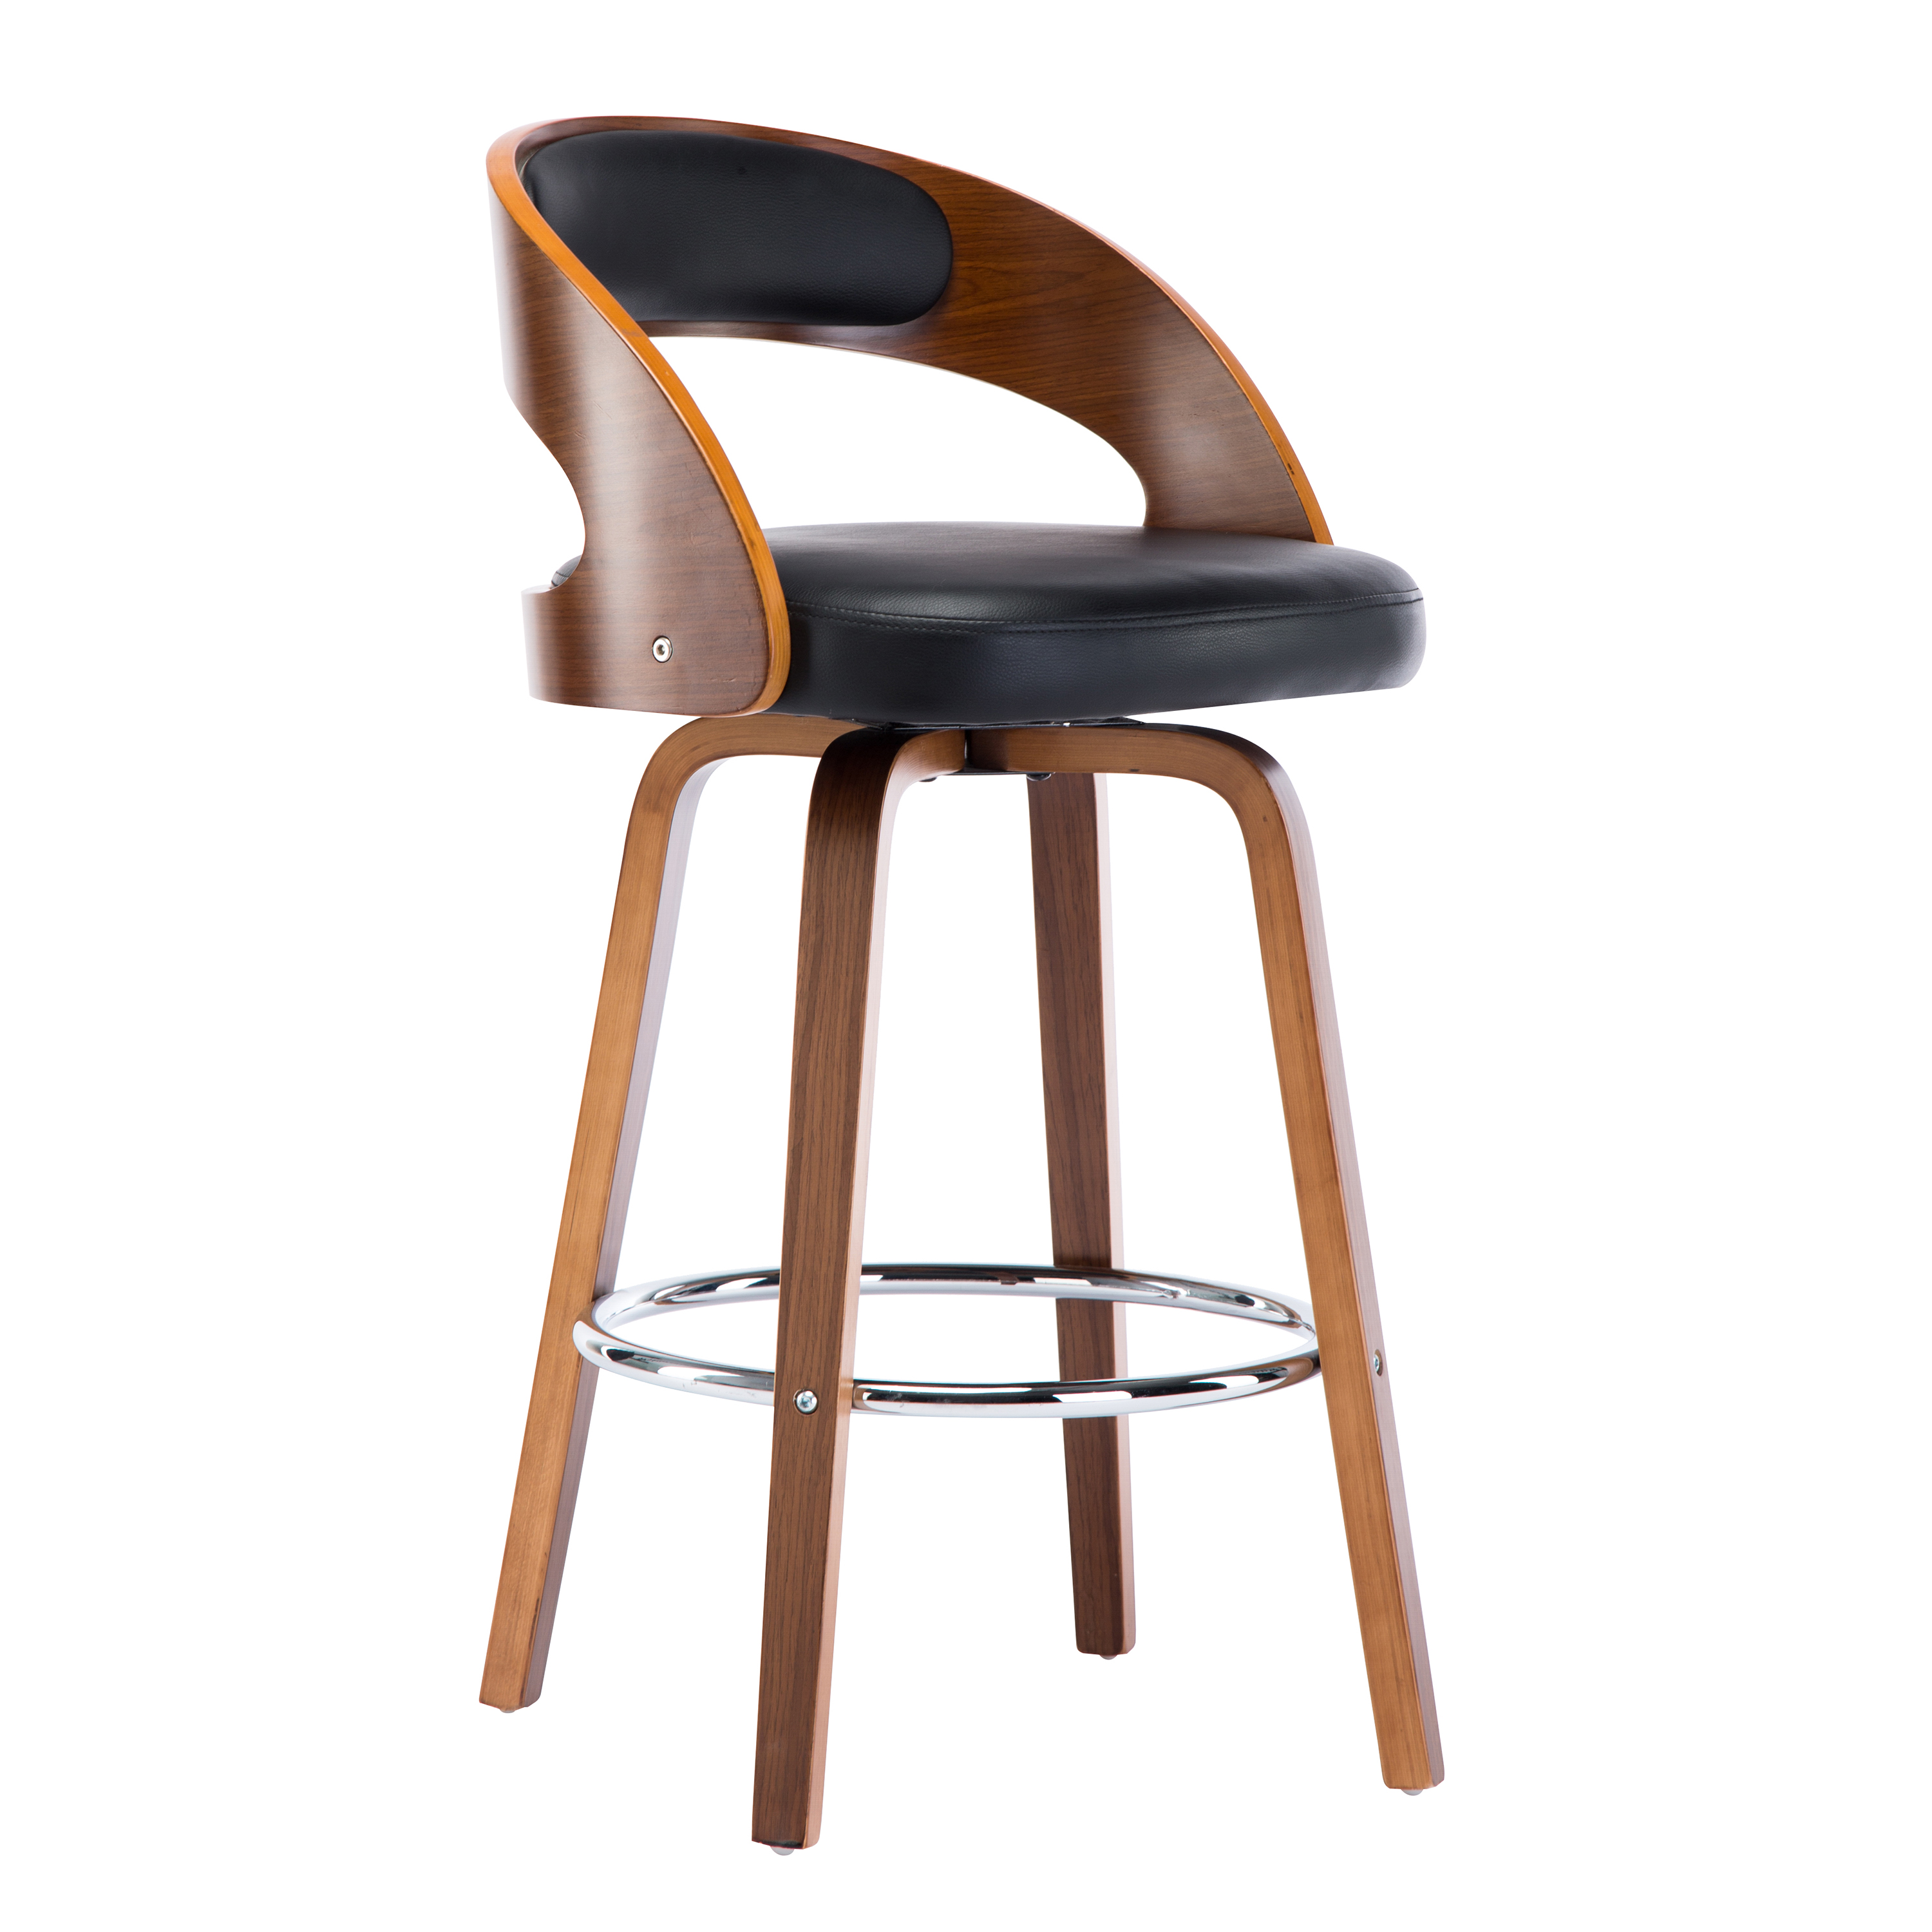 Wood And Black Faux Leather Mid Century Modern Swivel Barstool With Back 26 Inch Seat Height Christies Home Living